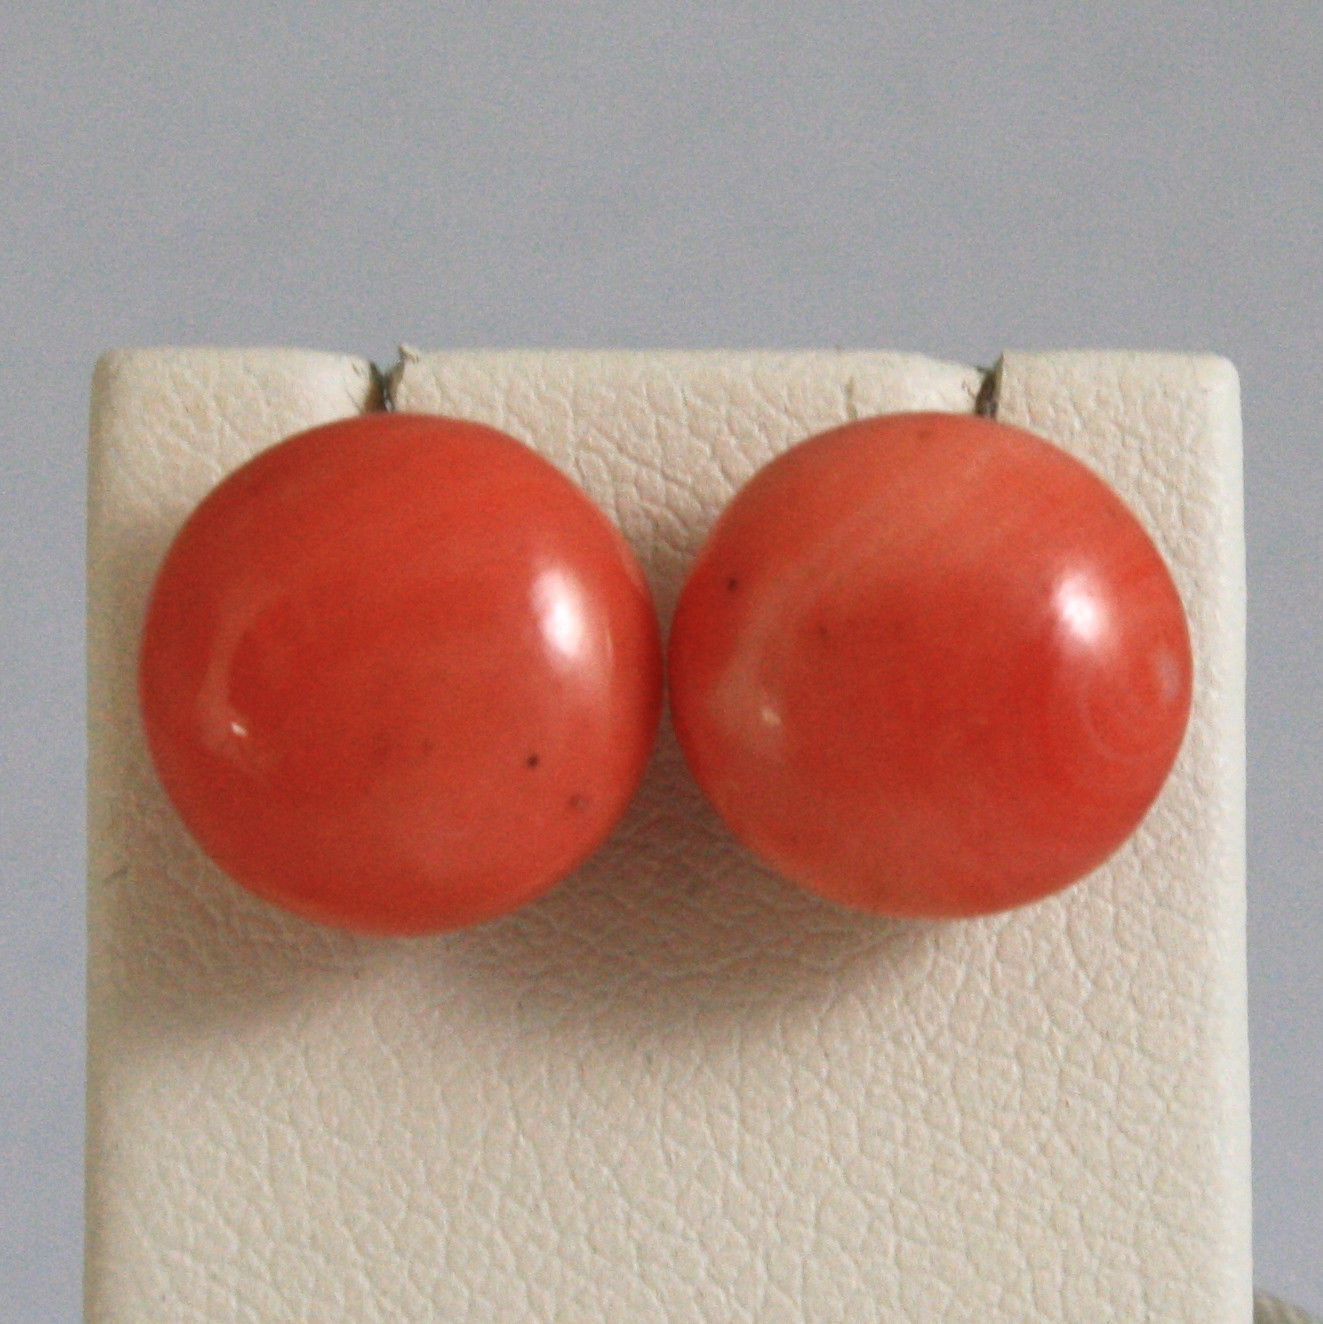 SOLID 18K YELLOW GOLD EARRINGS, WITH ORANGE CORAL BAMBOO, MADE IN ITALY